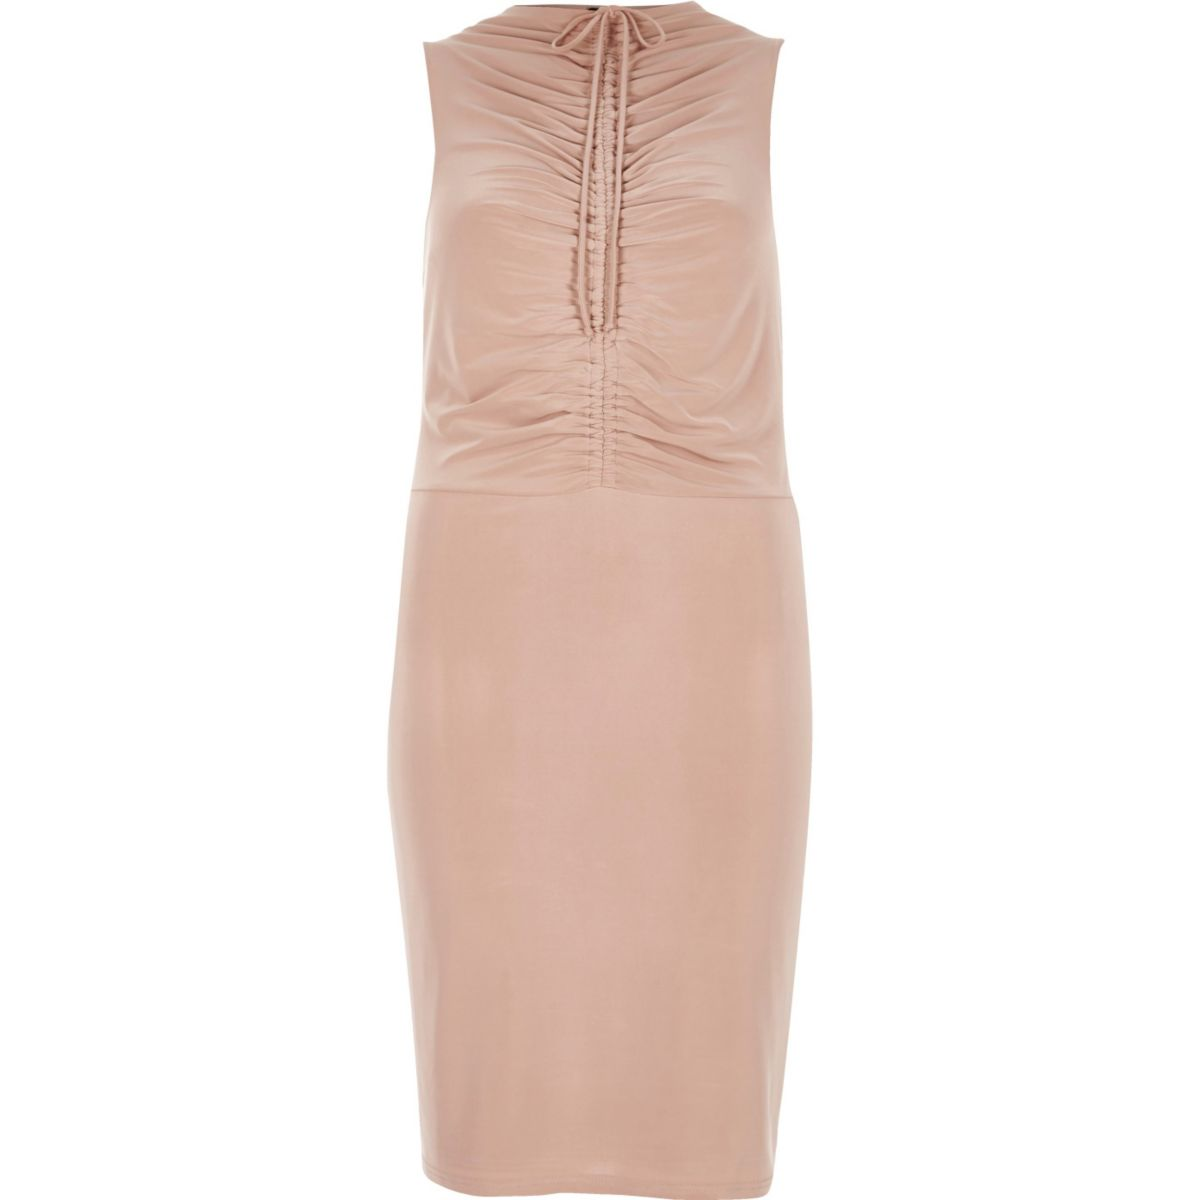 Nude pink ruched bodycon dress